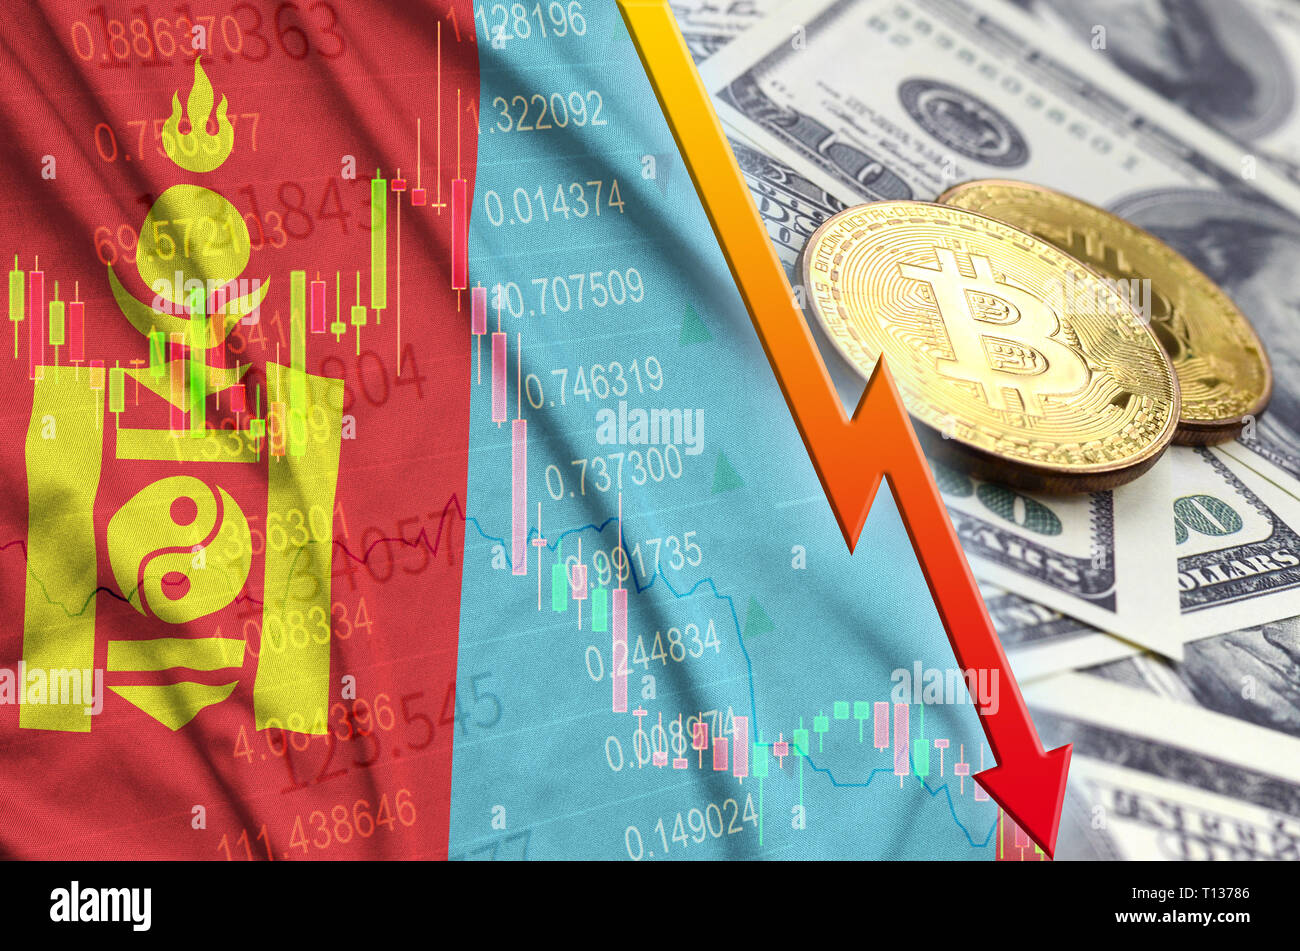 Mongolia flag and cryptocurrency falling trend with two bitcoins on dollar bills. Concept of depreciation Bitcoin in price against the dollar - Stock Image